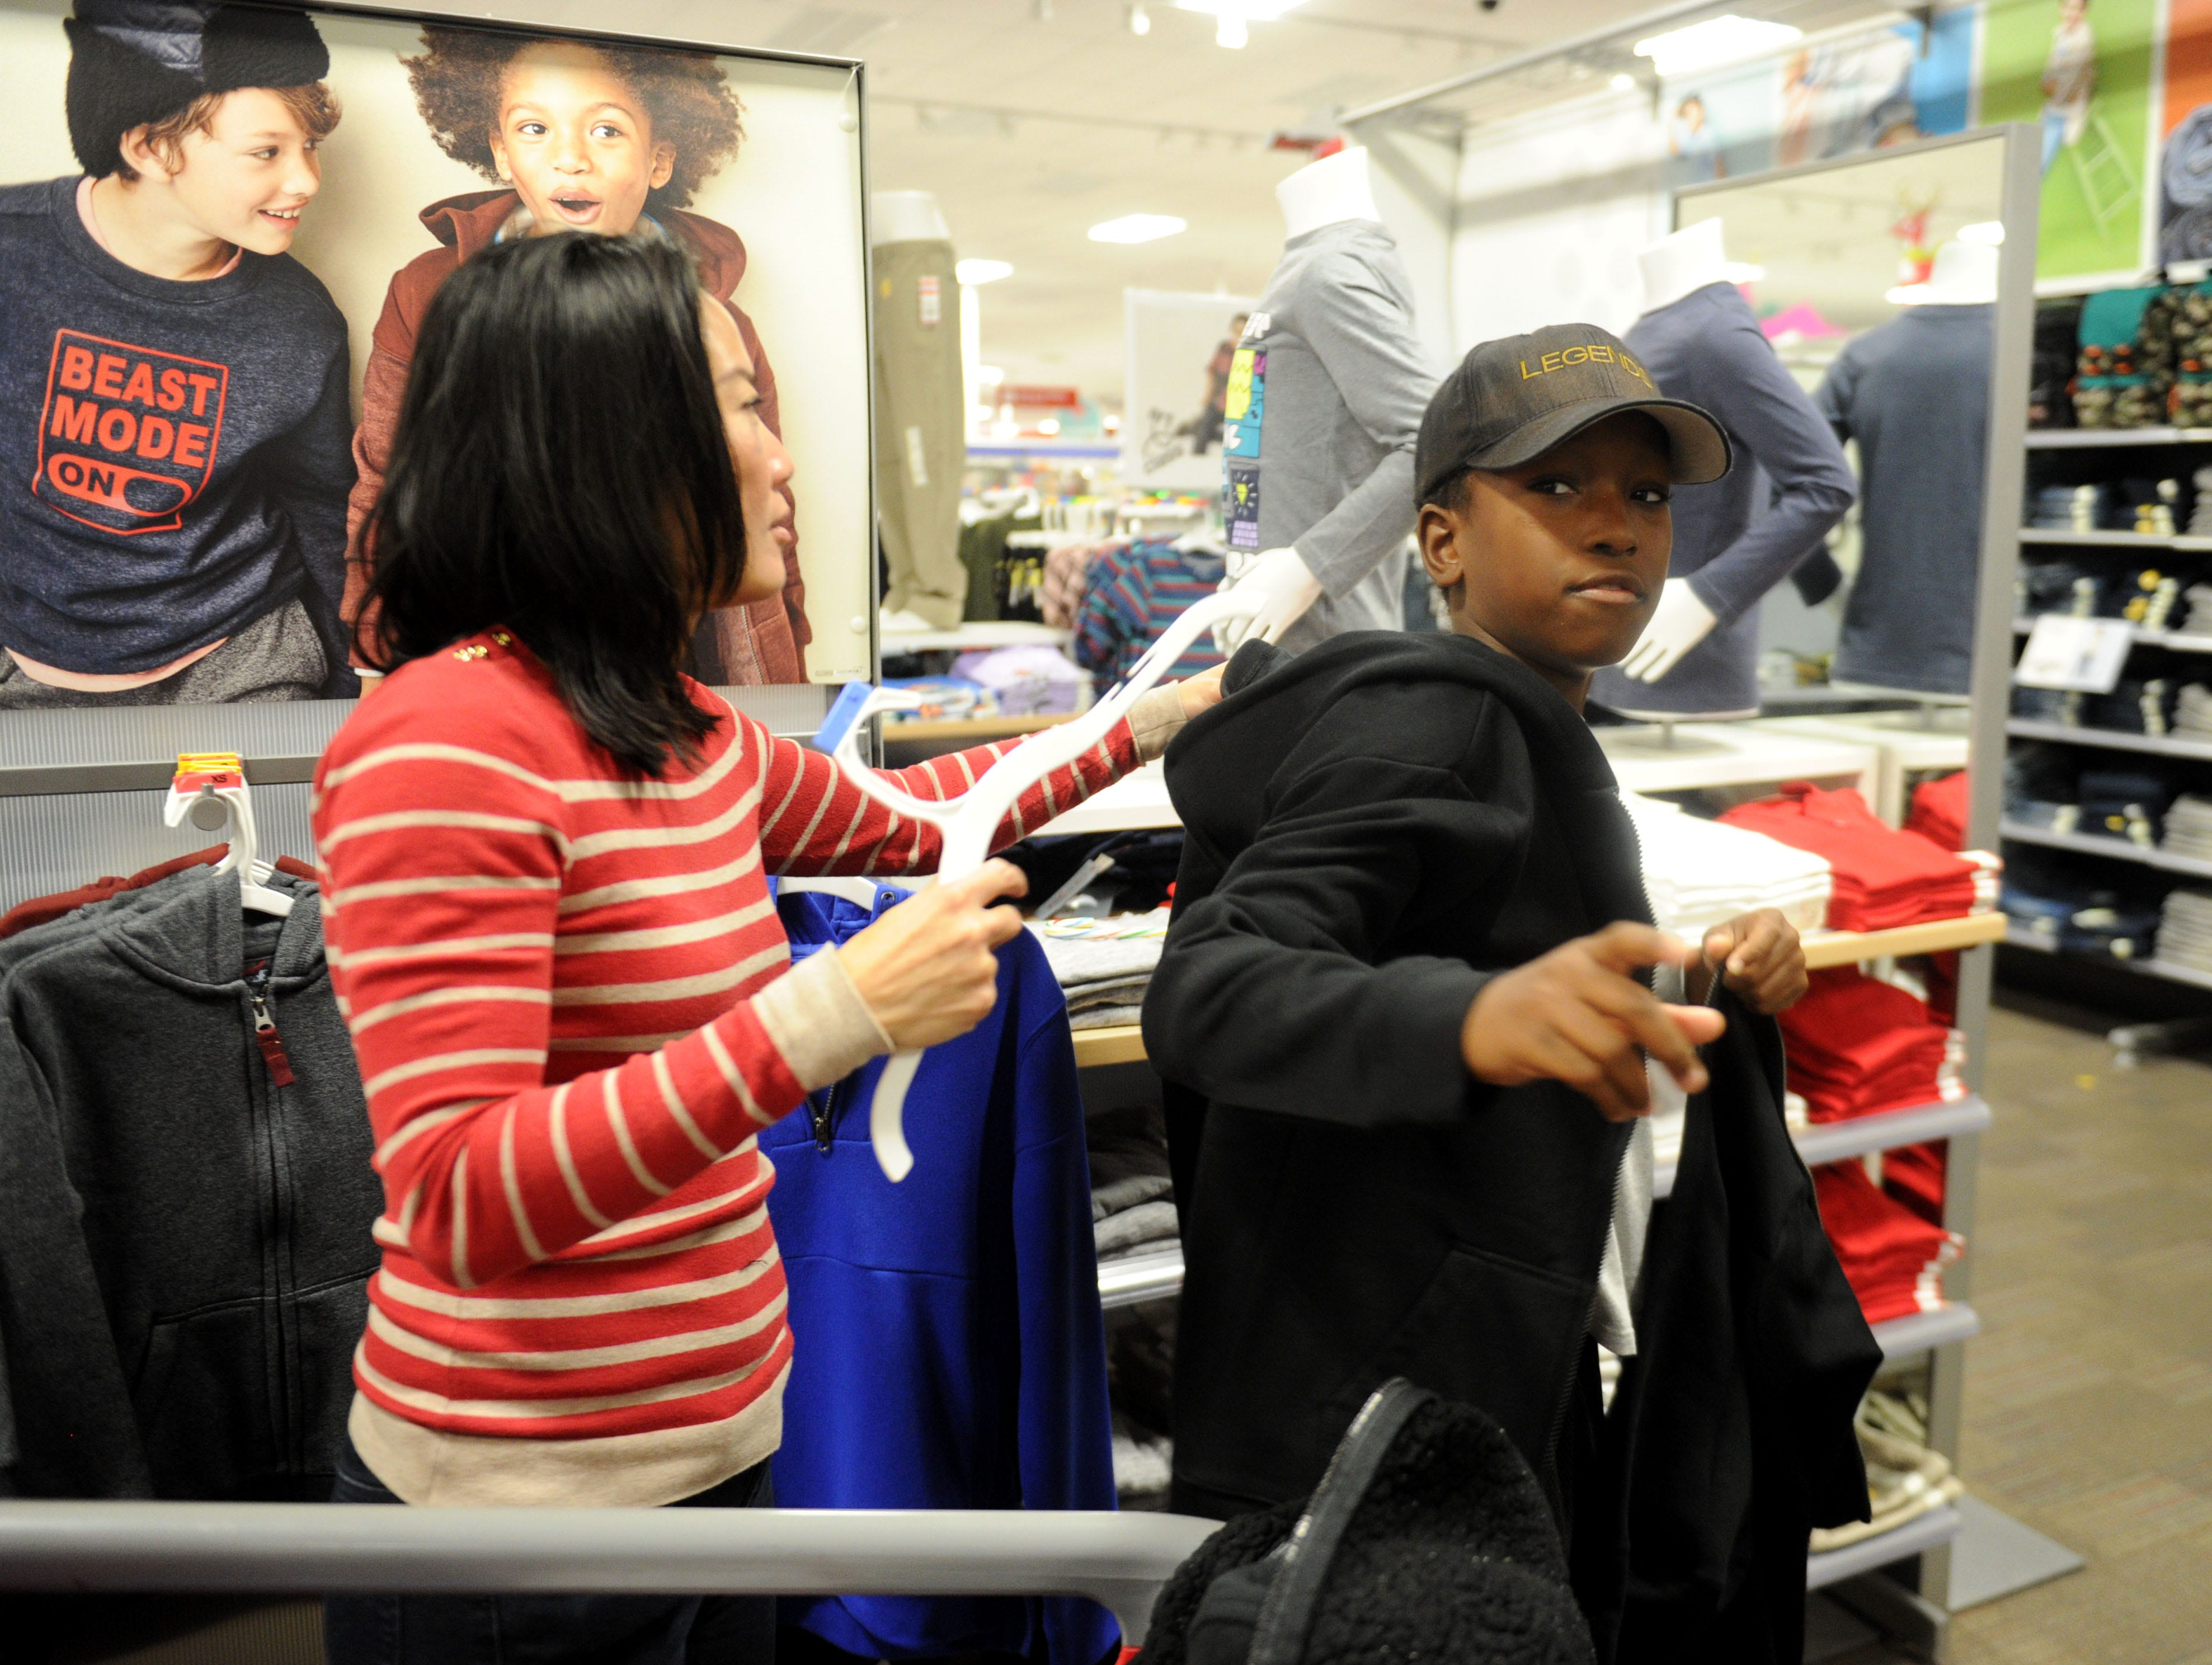 Kristina Tansavatdi, with the Rotary Club of Westlake Village, helps Samuel Opoku gets a hoodie and a gift for his mom. The club hosted a shopping spree at Target for 36 members of the Boys & Girls Club. The children, each with $110 to spend, were paired with 36 volunteers, and they also got two $10 gift cards so they could buy gifts for someone else.